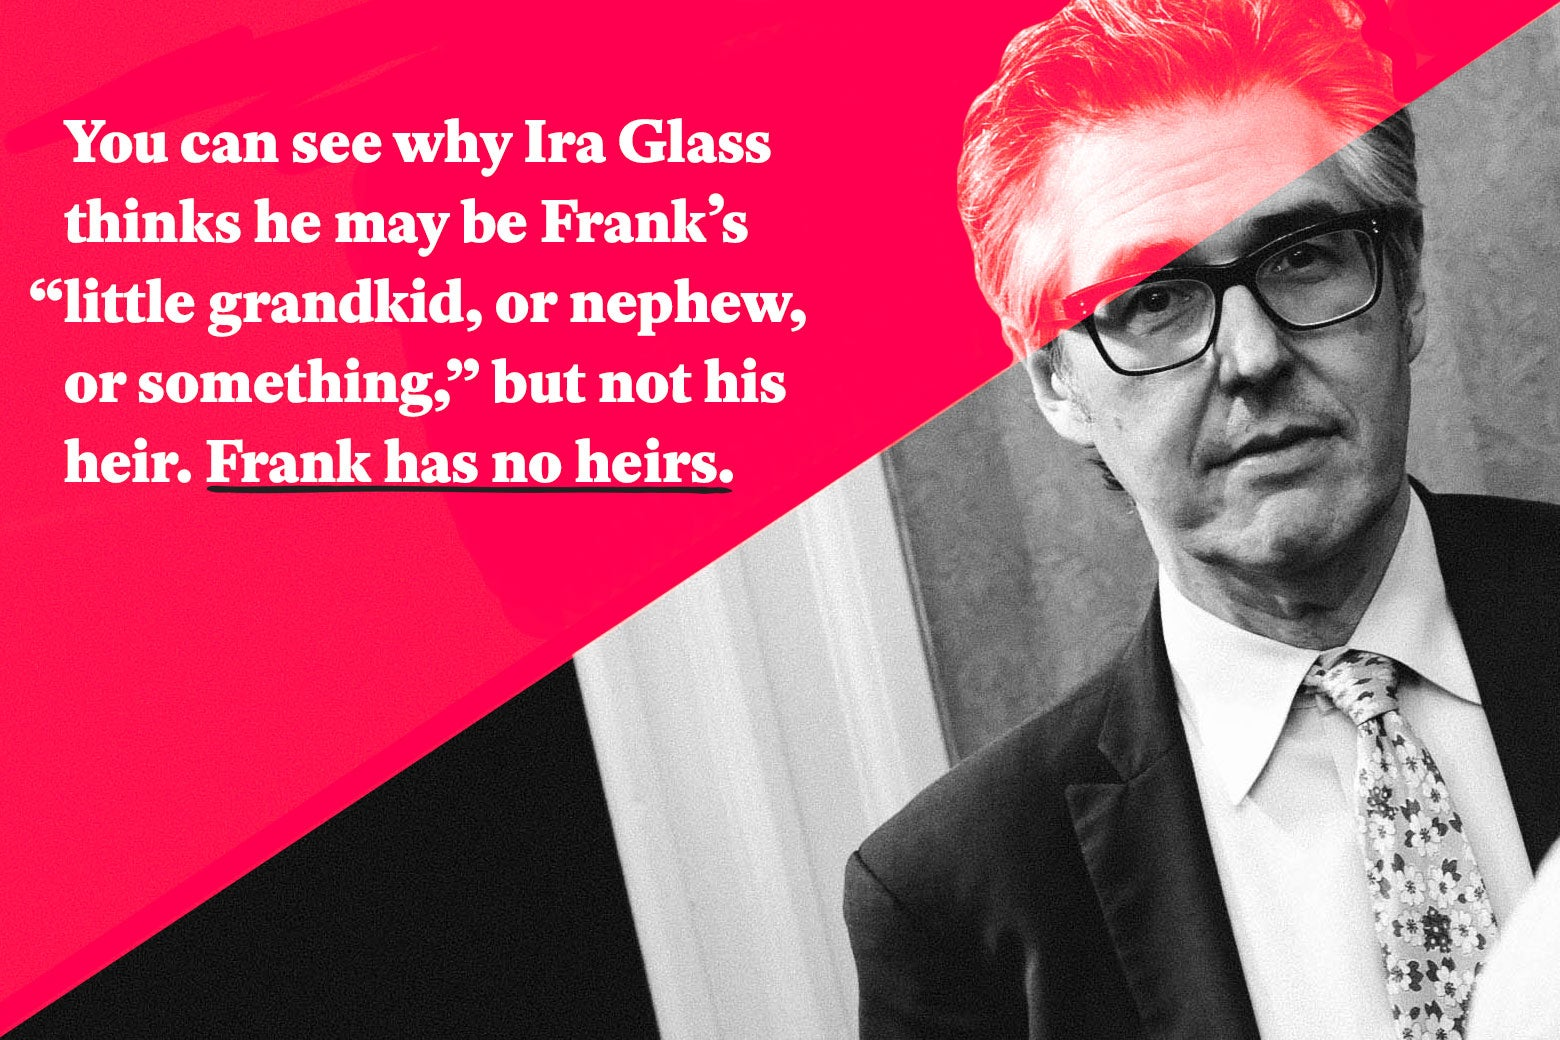 "You can see why Ira Glass thinks he may be Frank's ""little grandkid, or nephew, or something,"" but not his heir. Frank has no heirs."